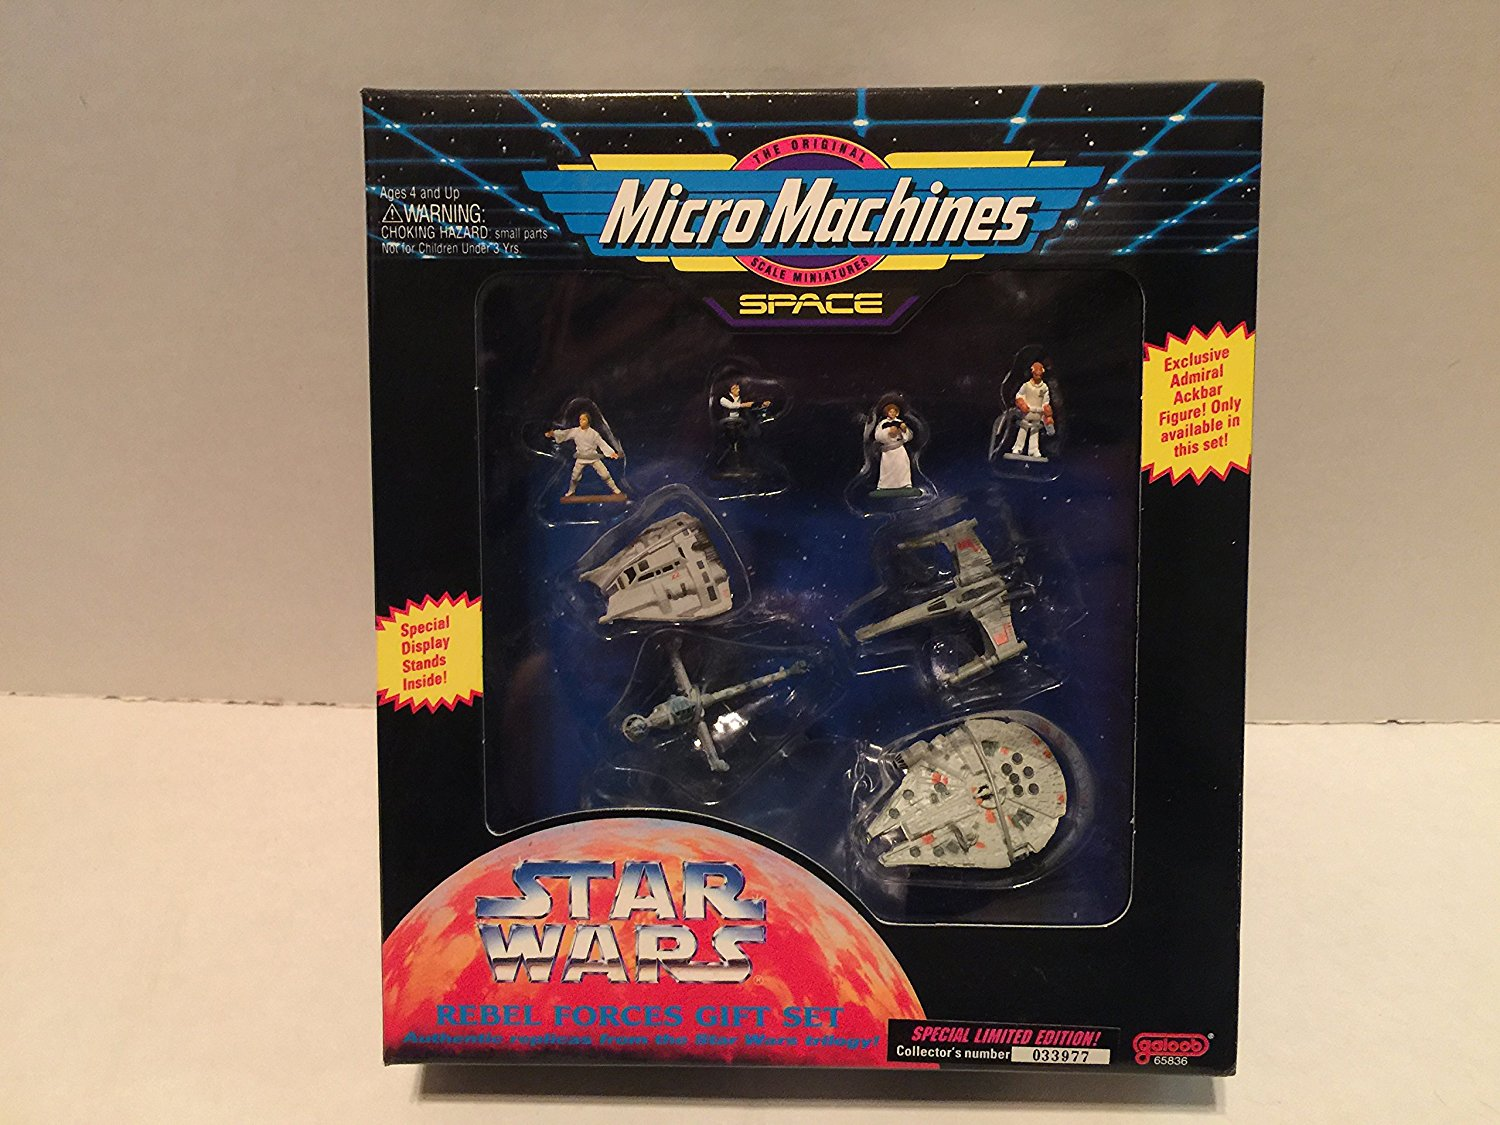 Micro Machines Star Wars Rebel Forces Gift Set